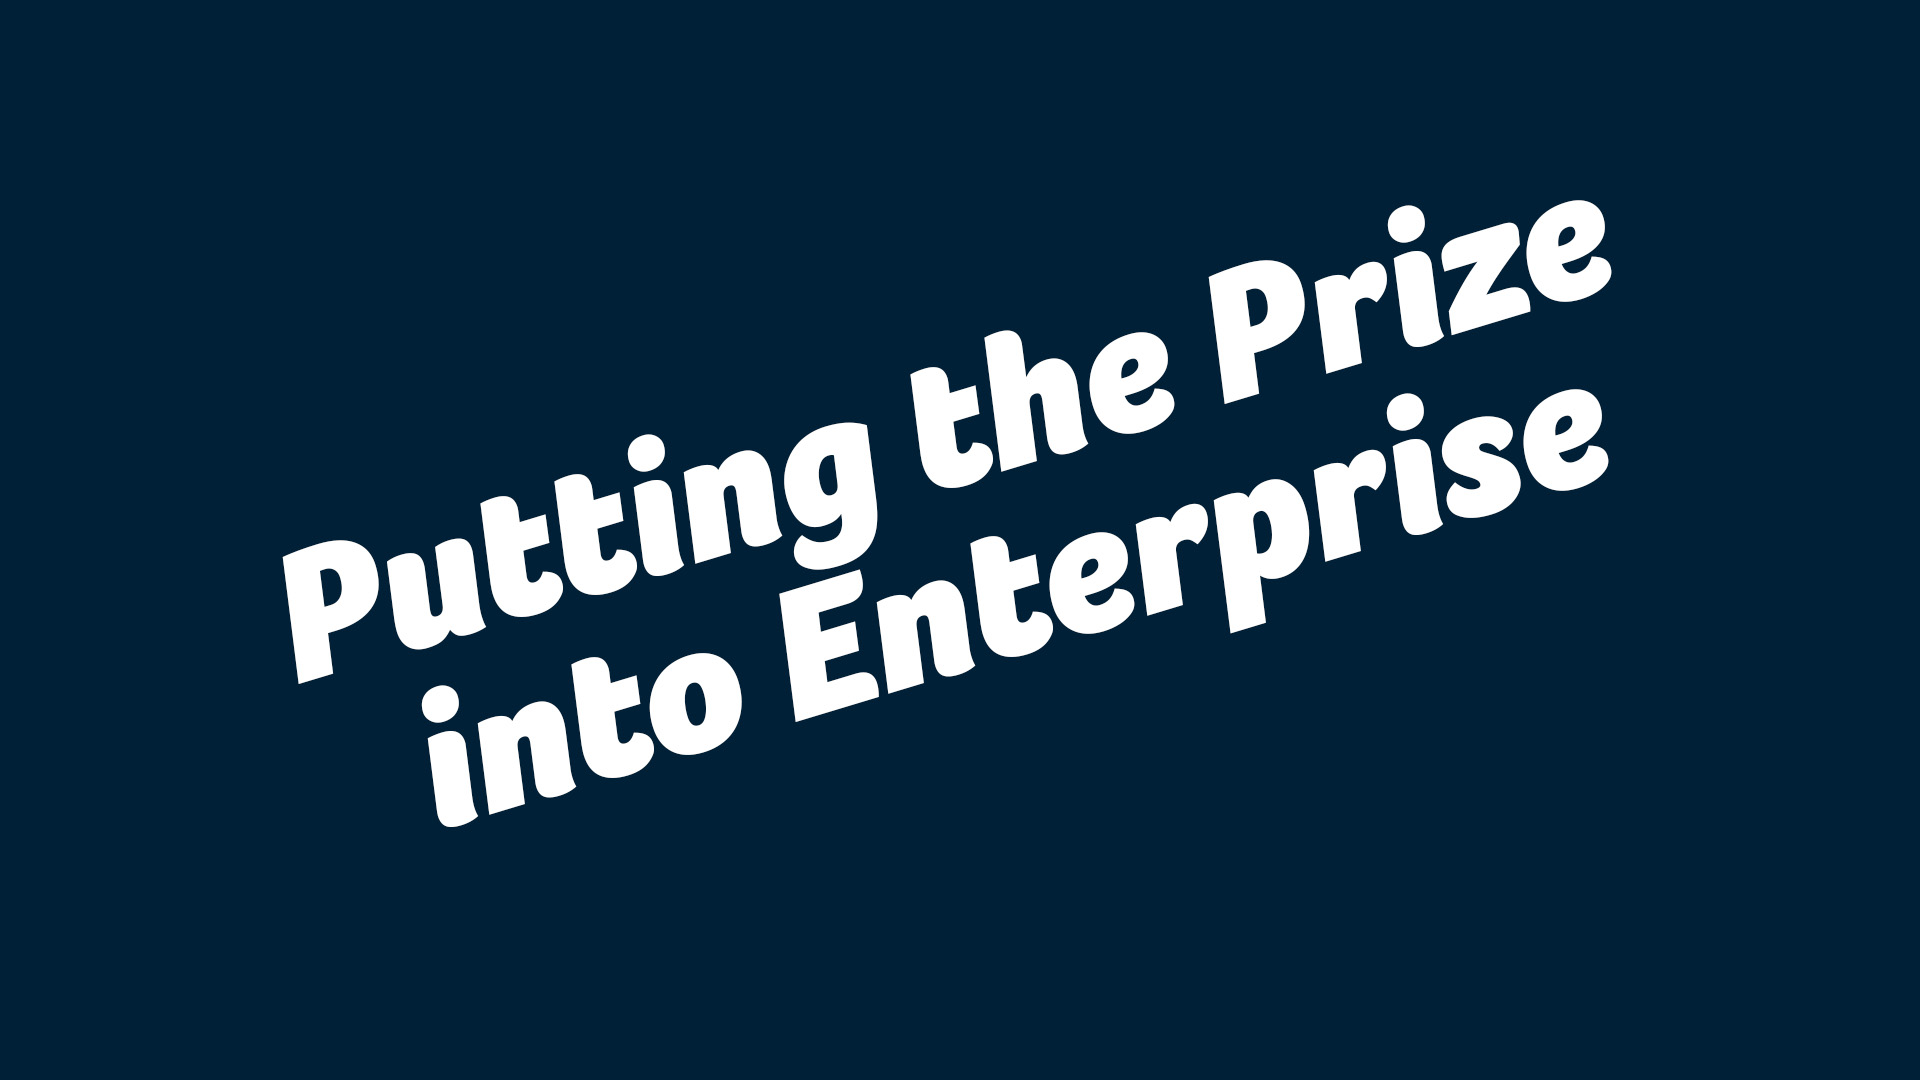 Putting the Prize in Enterprise